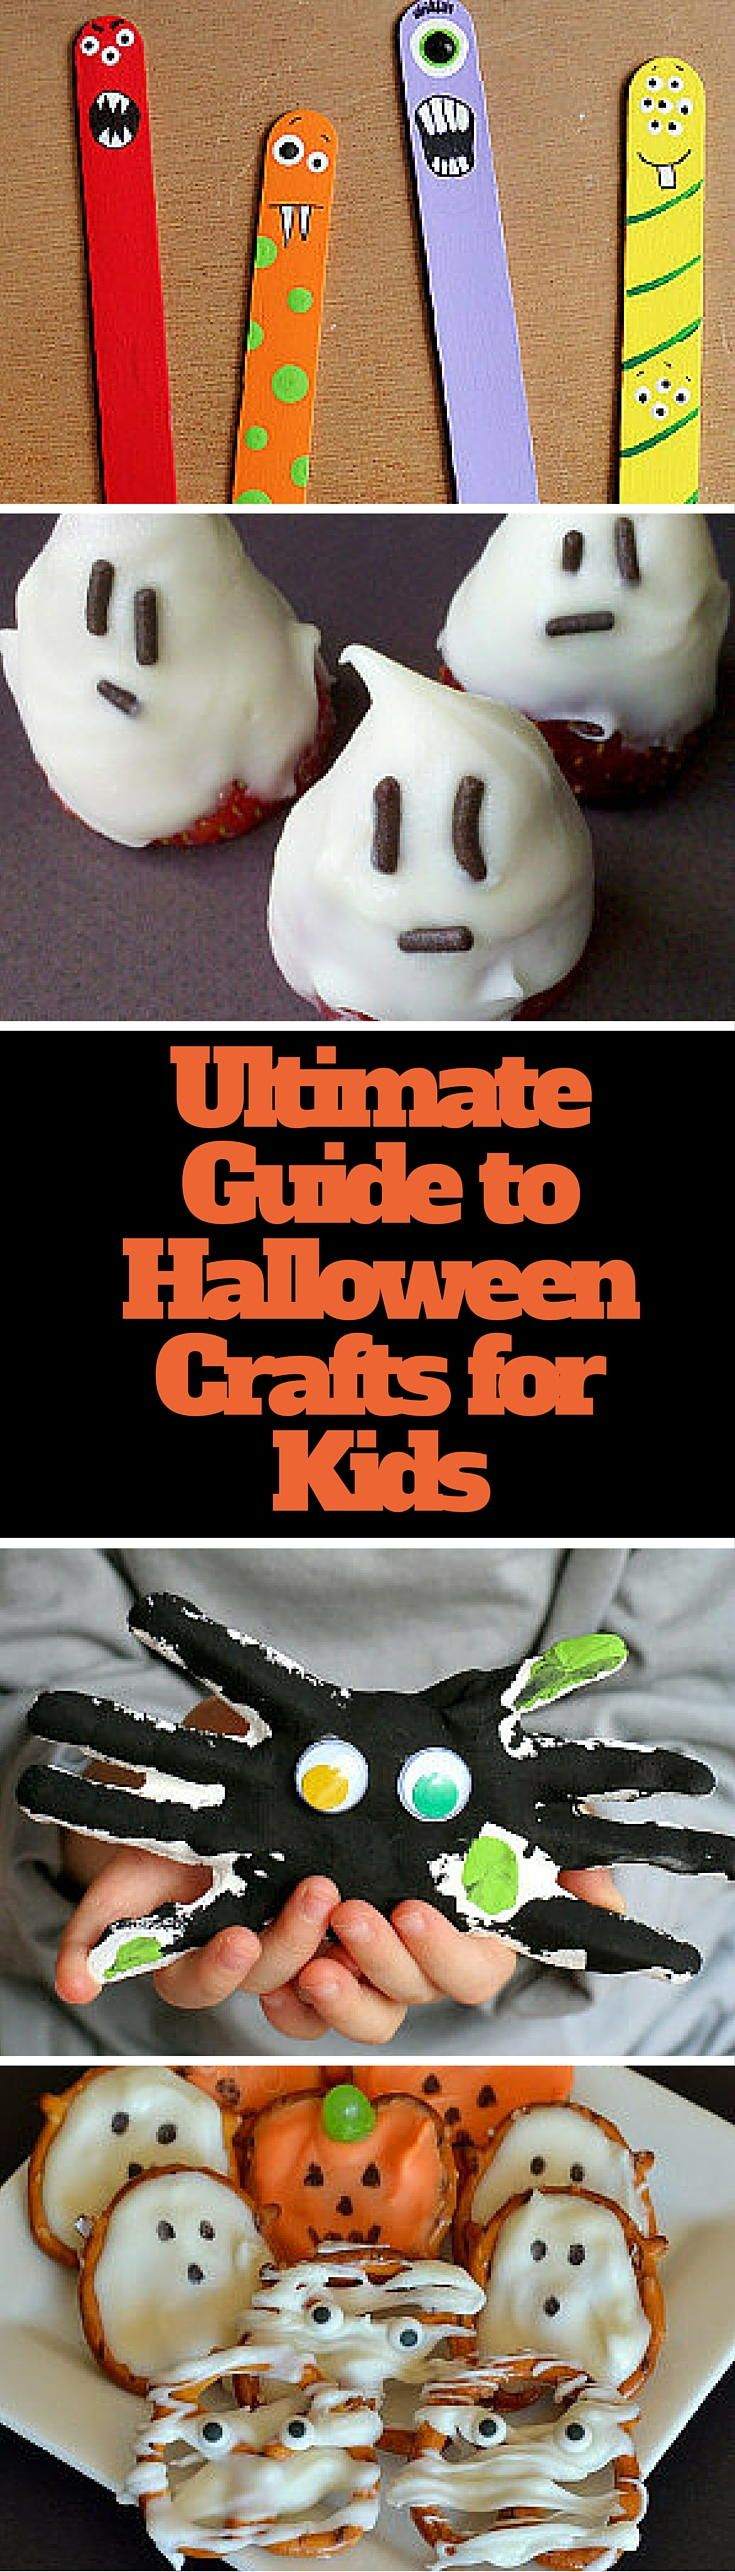 Ultimate Kids Halloween Crafts Guide: 100+ Spooky Crafts and Homemade Costumes for Kids + 100 More Halloween Crafts for Kids   AllFreeKidsCrafts.com